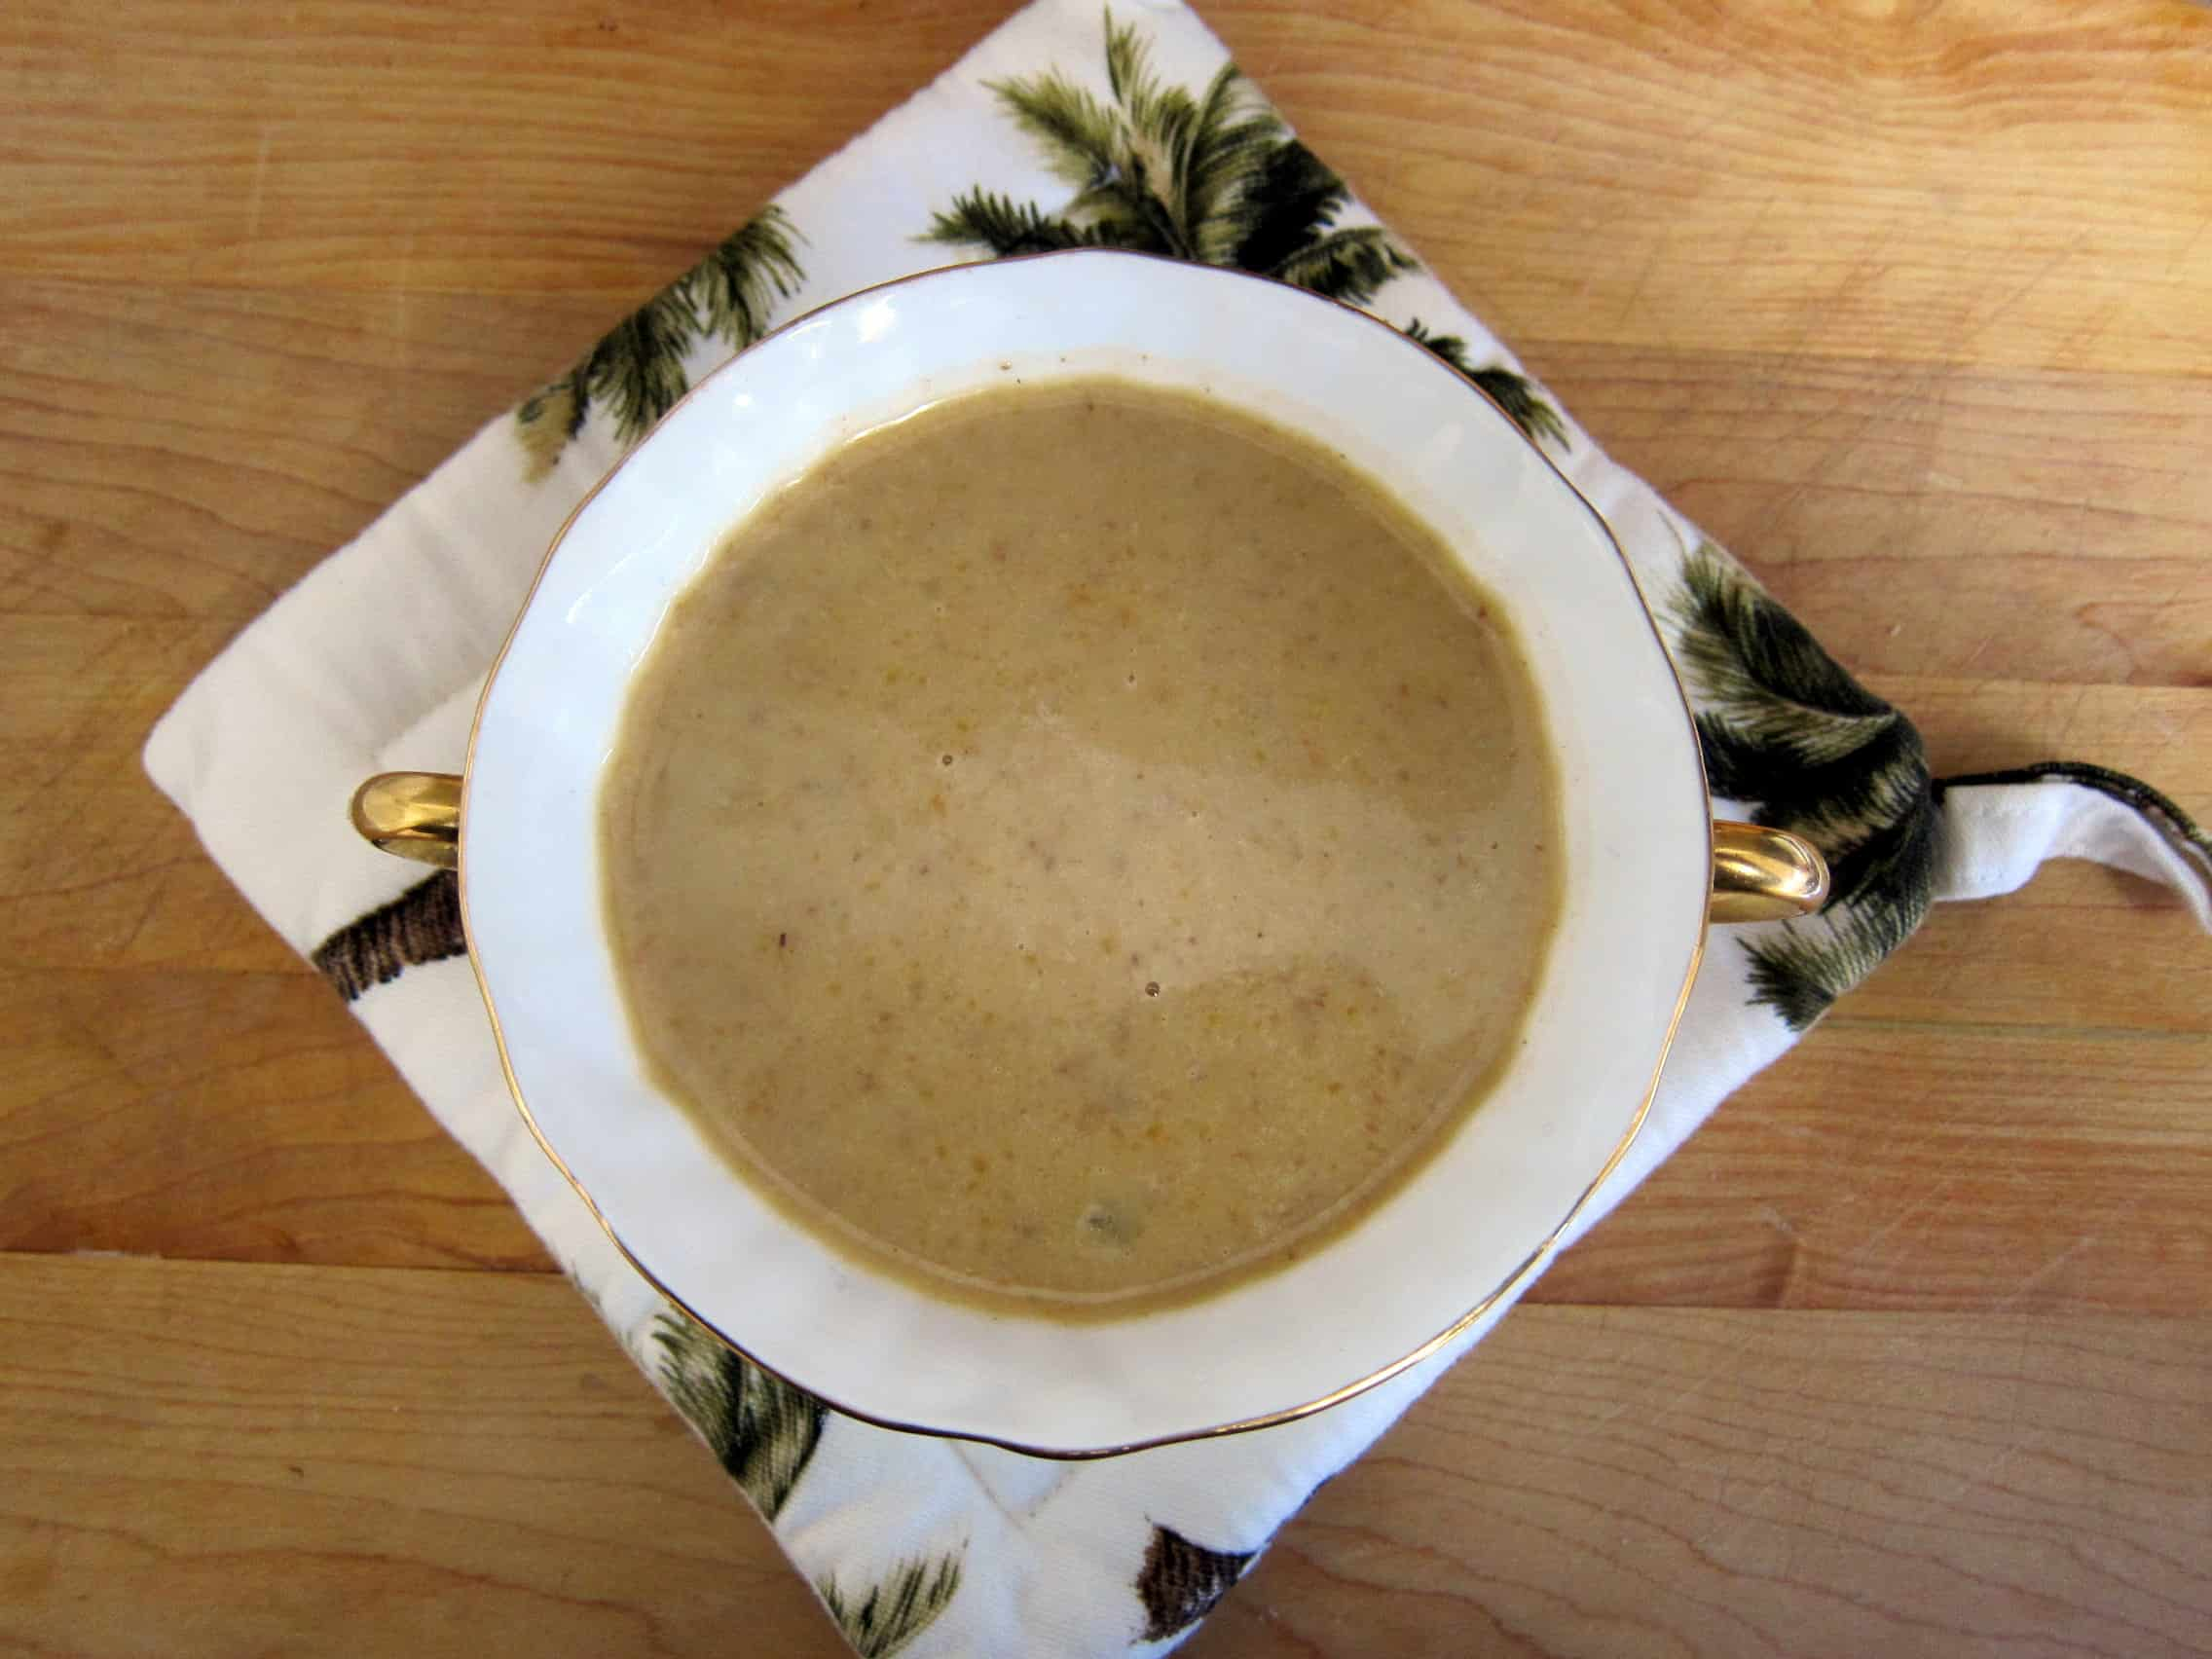 CHESTNUT SOUP FOR NANA:We lost dear Irene, my mother-in-law, a few short weeks ago.